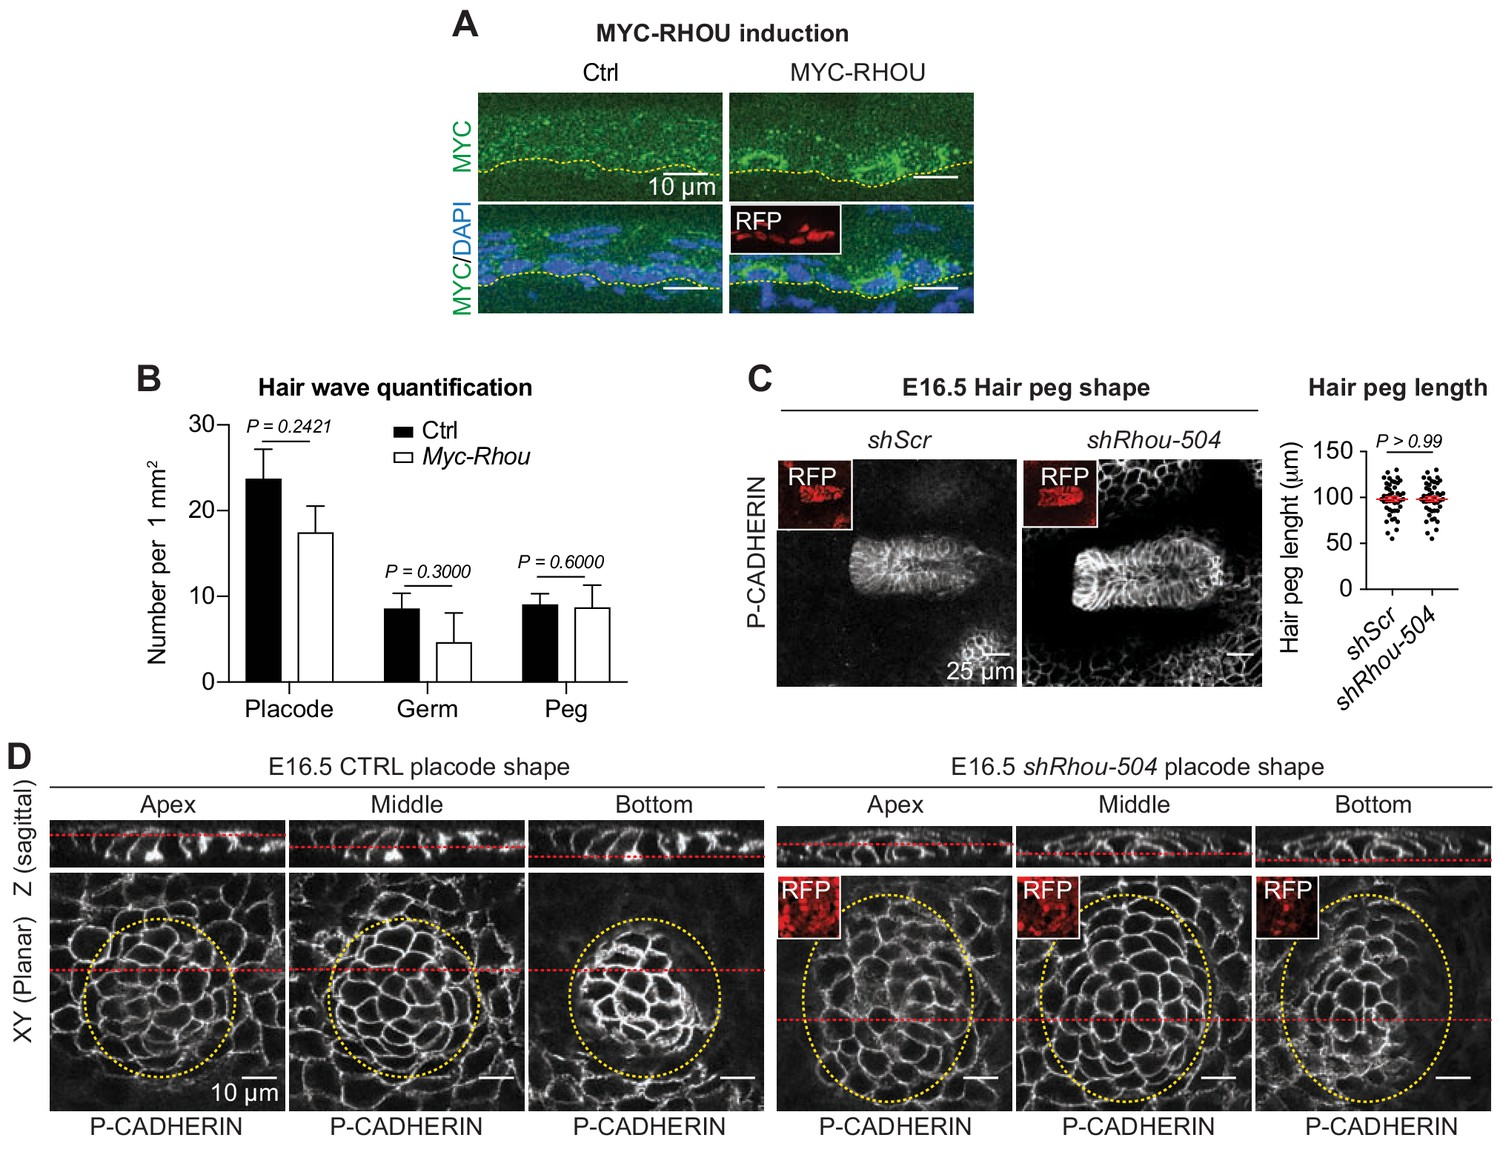 An Rnai Screen Unravels The Complexities Of Rho Gtpase Networks In Skin Morphogenesis Elife Girl, boy, hd, capes for them. an rnai screen unravels the